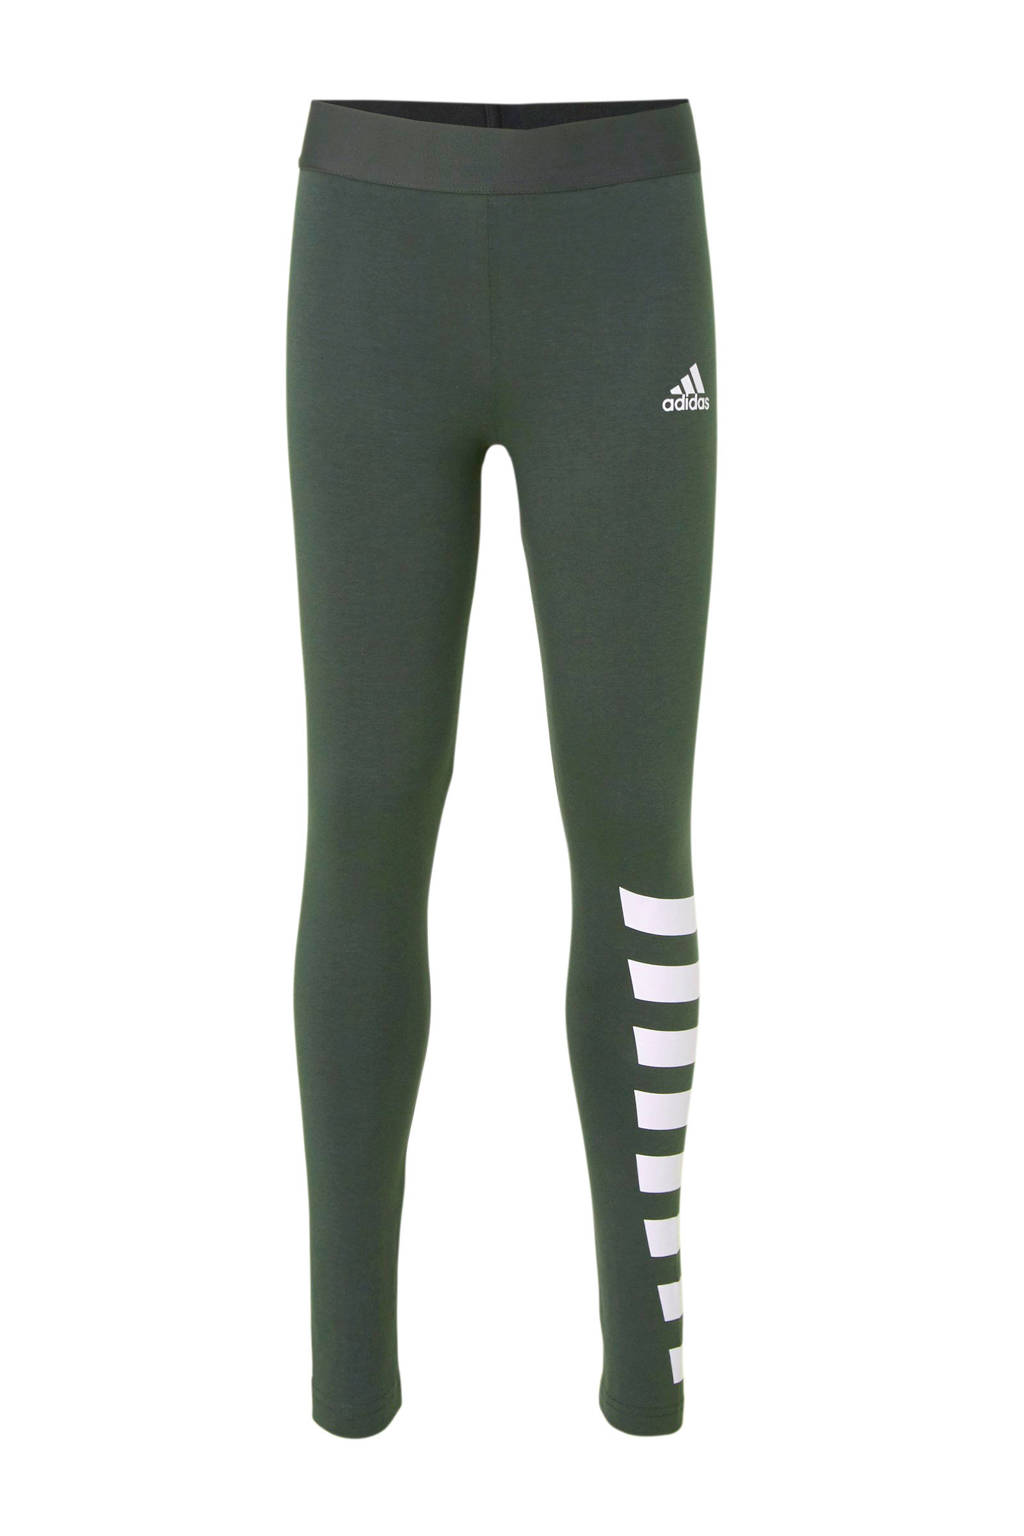 adidas performance 7/8 sportbroek antraciet, Antraciet/wit